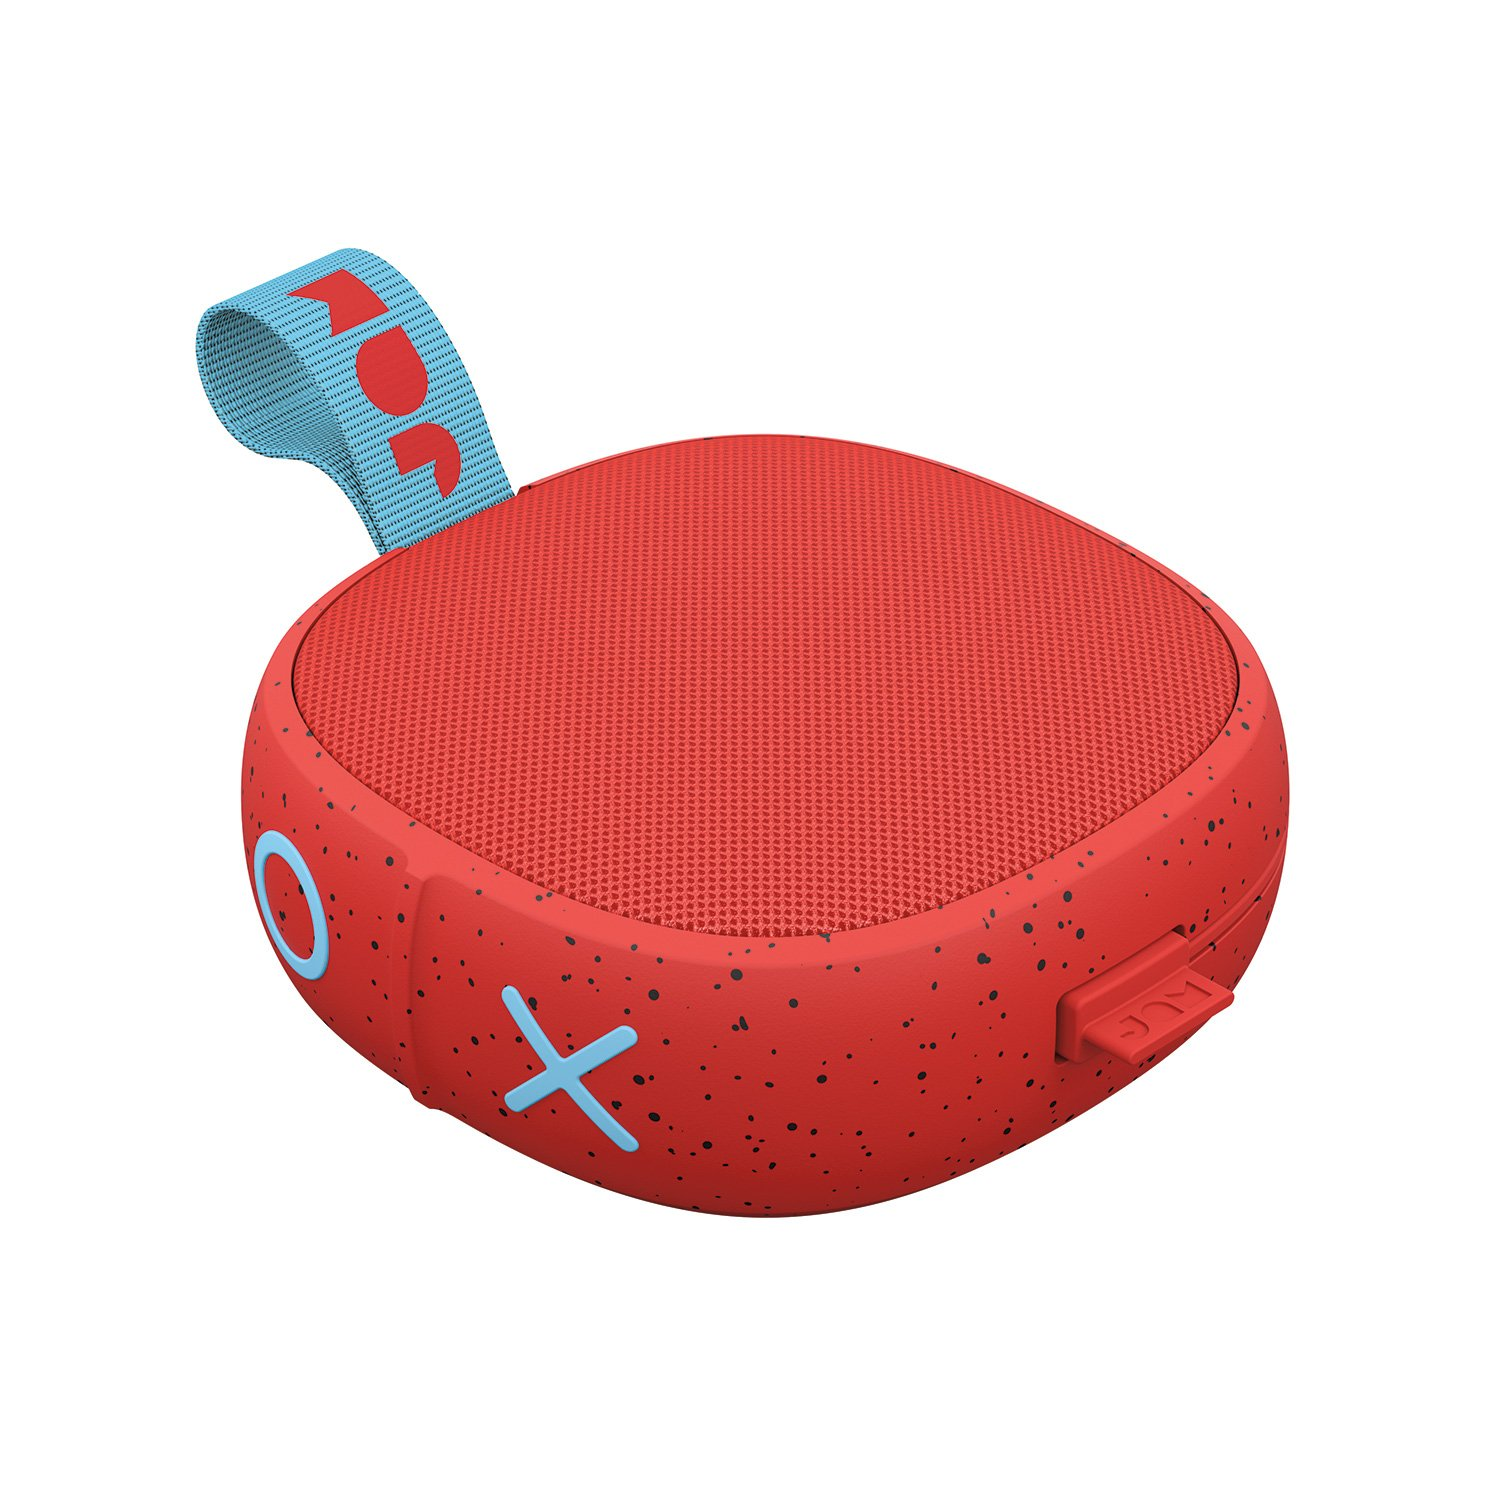 Hang Up  Shower Bluetooth Speaker  8 Hour Playtime  Waterproof  Dust-Proof  Drop-Proof IP67 Rating  Built-in Speakerphone  Aux-In Port  Integrated USB  JAM Audio Red